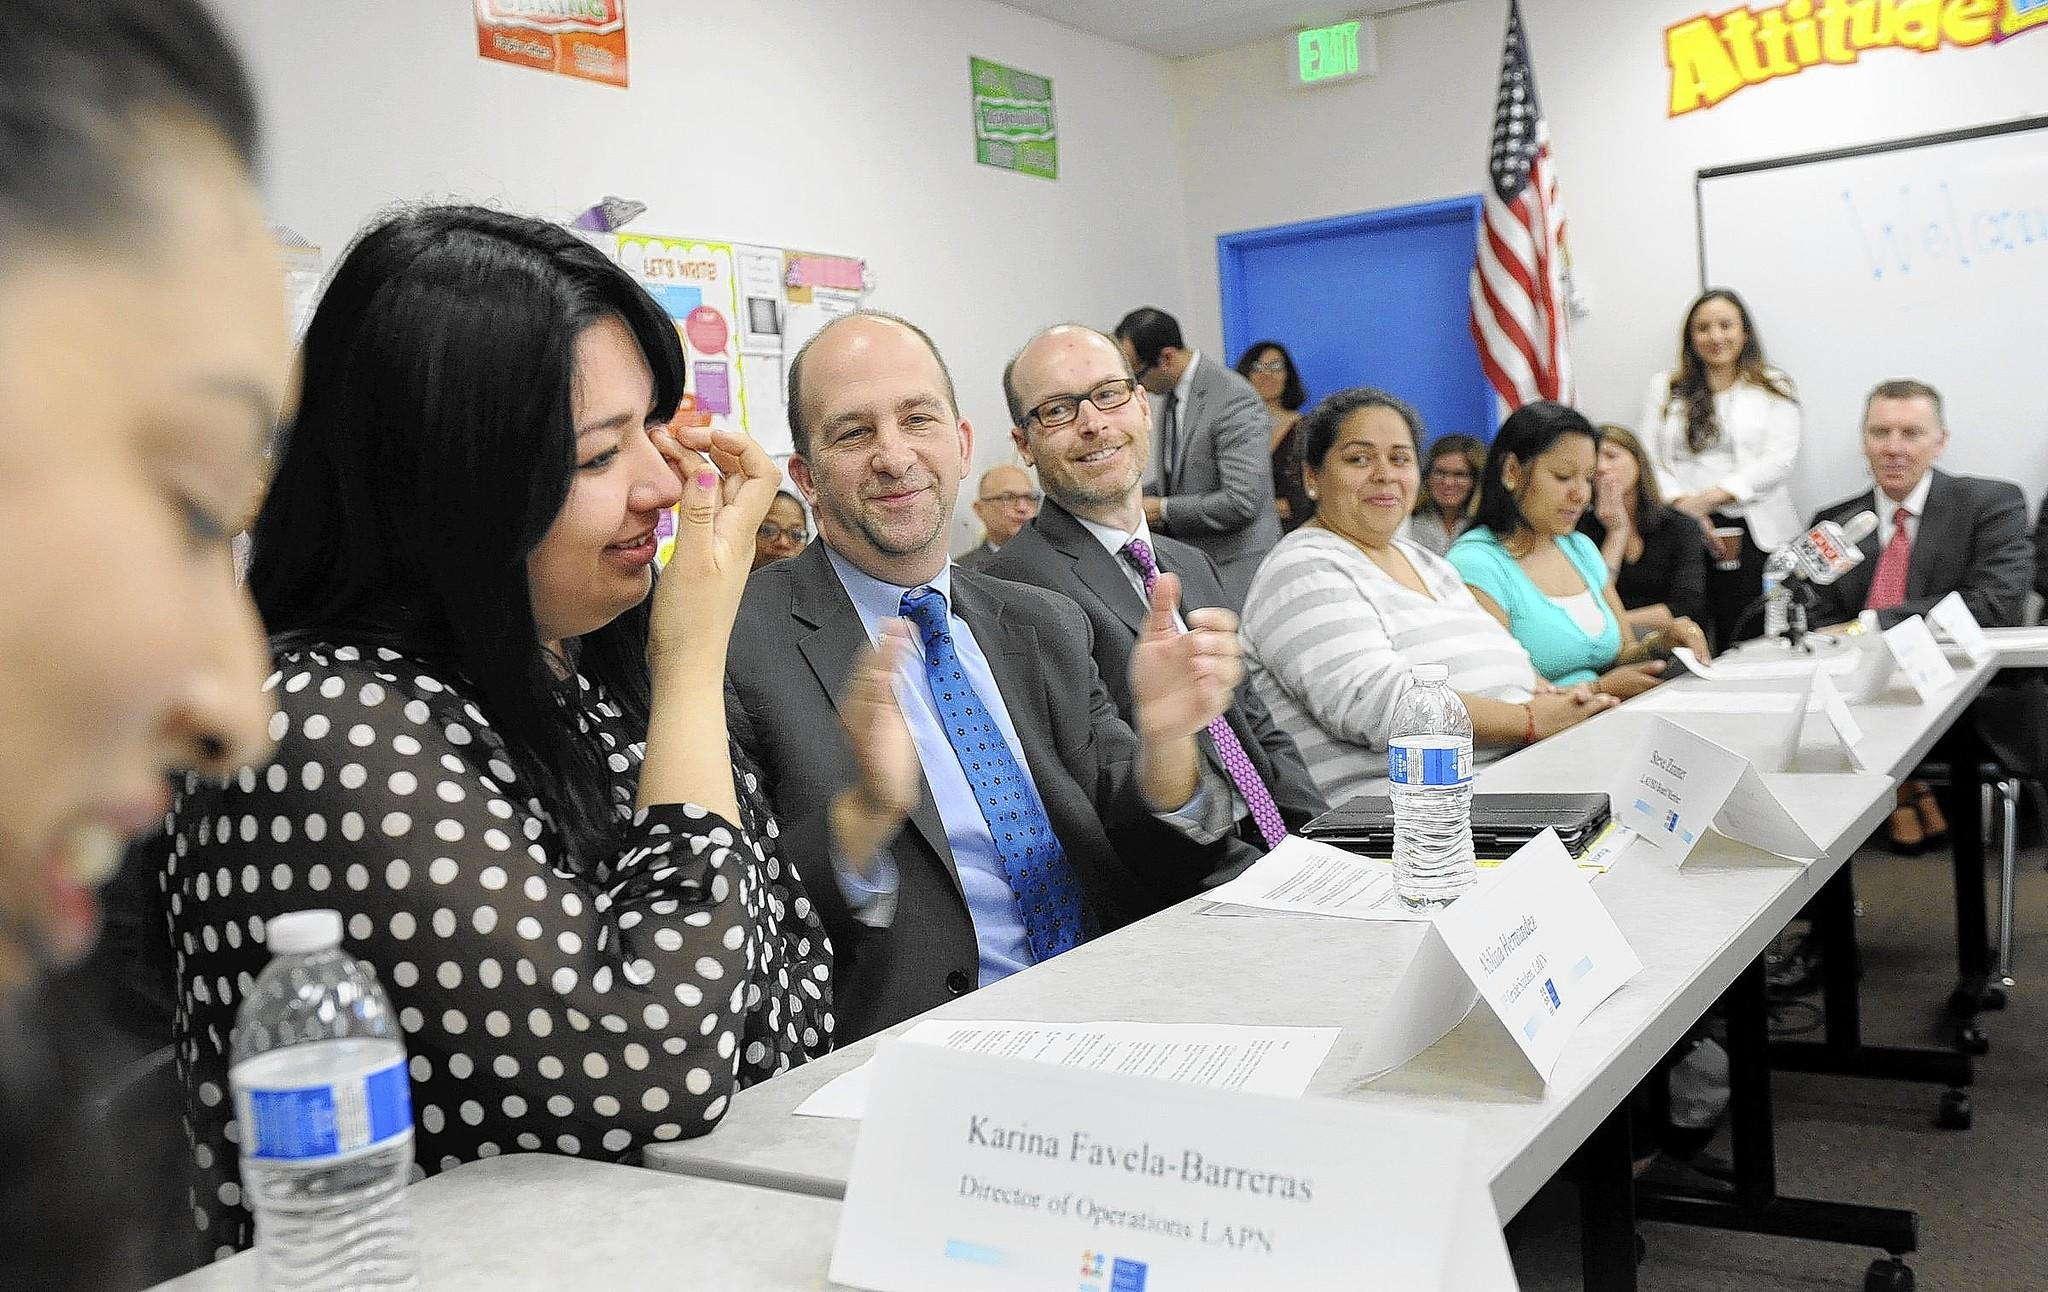 If the Los Angeles school board approves having a student advisory member, the student would provide guidance on issues and cast an advisory vote just before the board's official vote. Above, 11th-grader Ablina Hernandez, second from left, takes part in a roundtable discussion at the Youth Policy Institute in L.A.